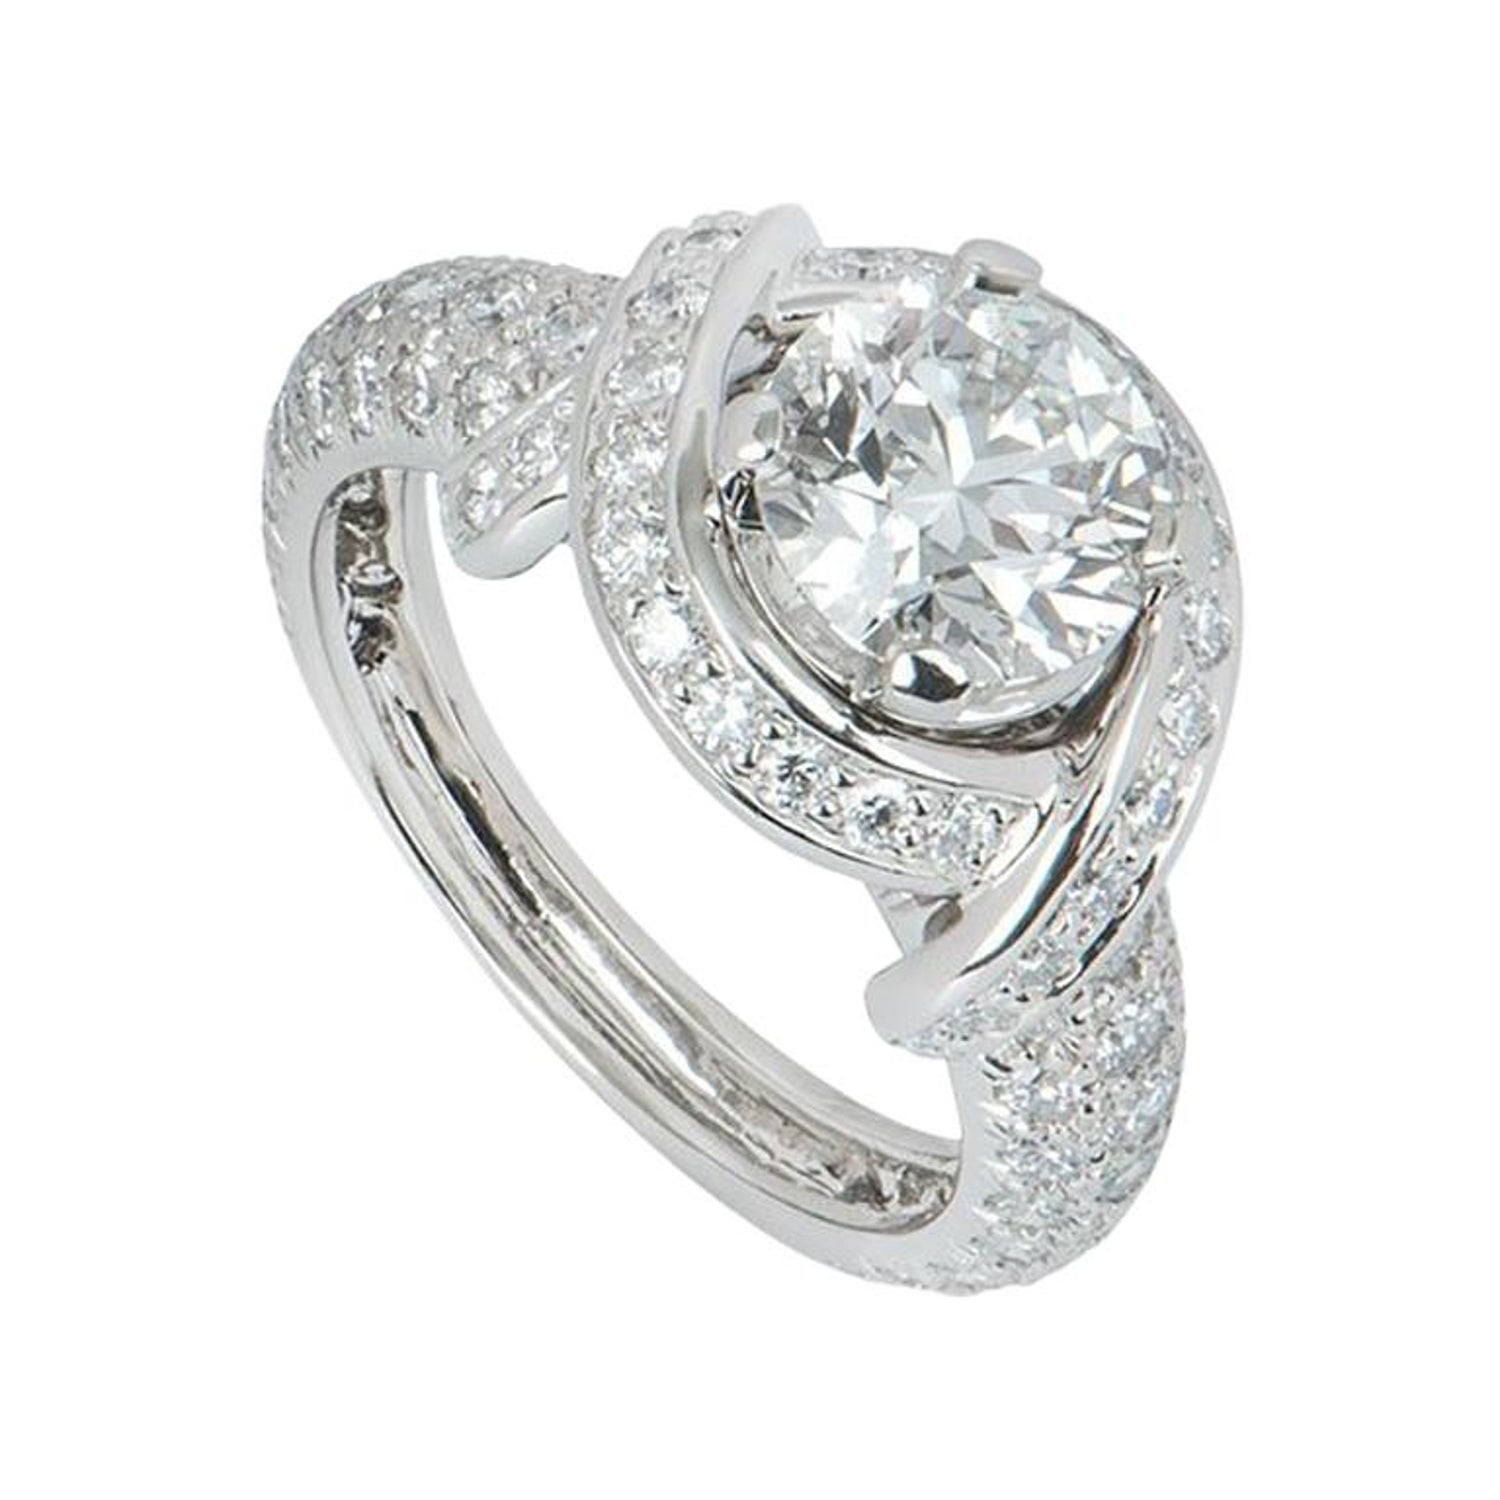 d385f45e1 Tiffany and Co. Platinum Diamond Schlumberger Engagement Ring For Sale at  1stdibs